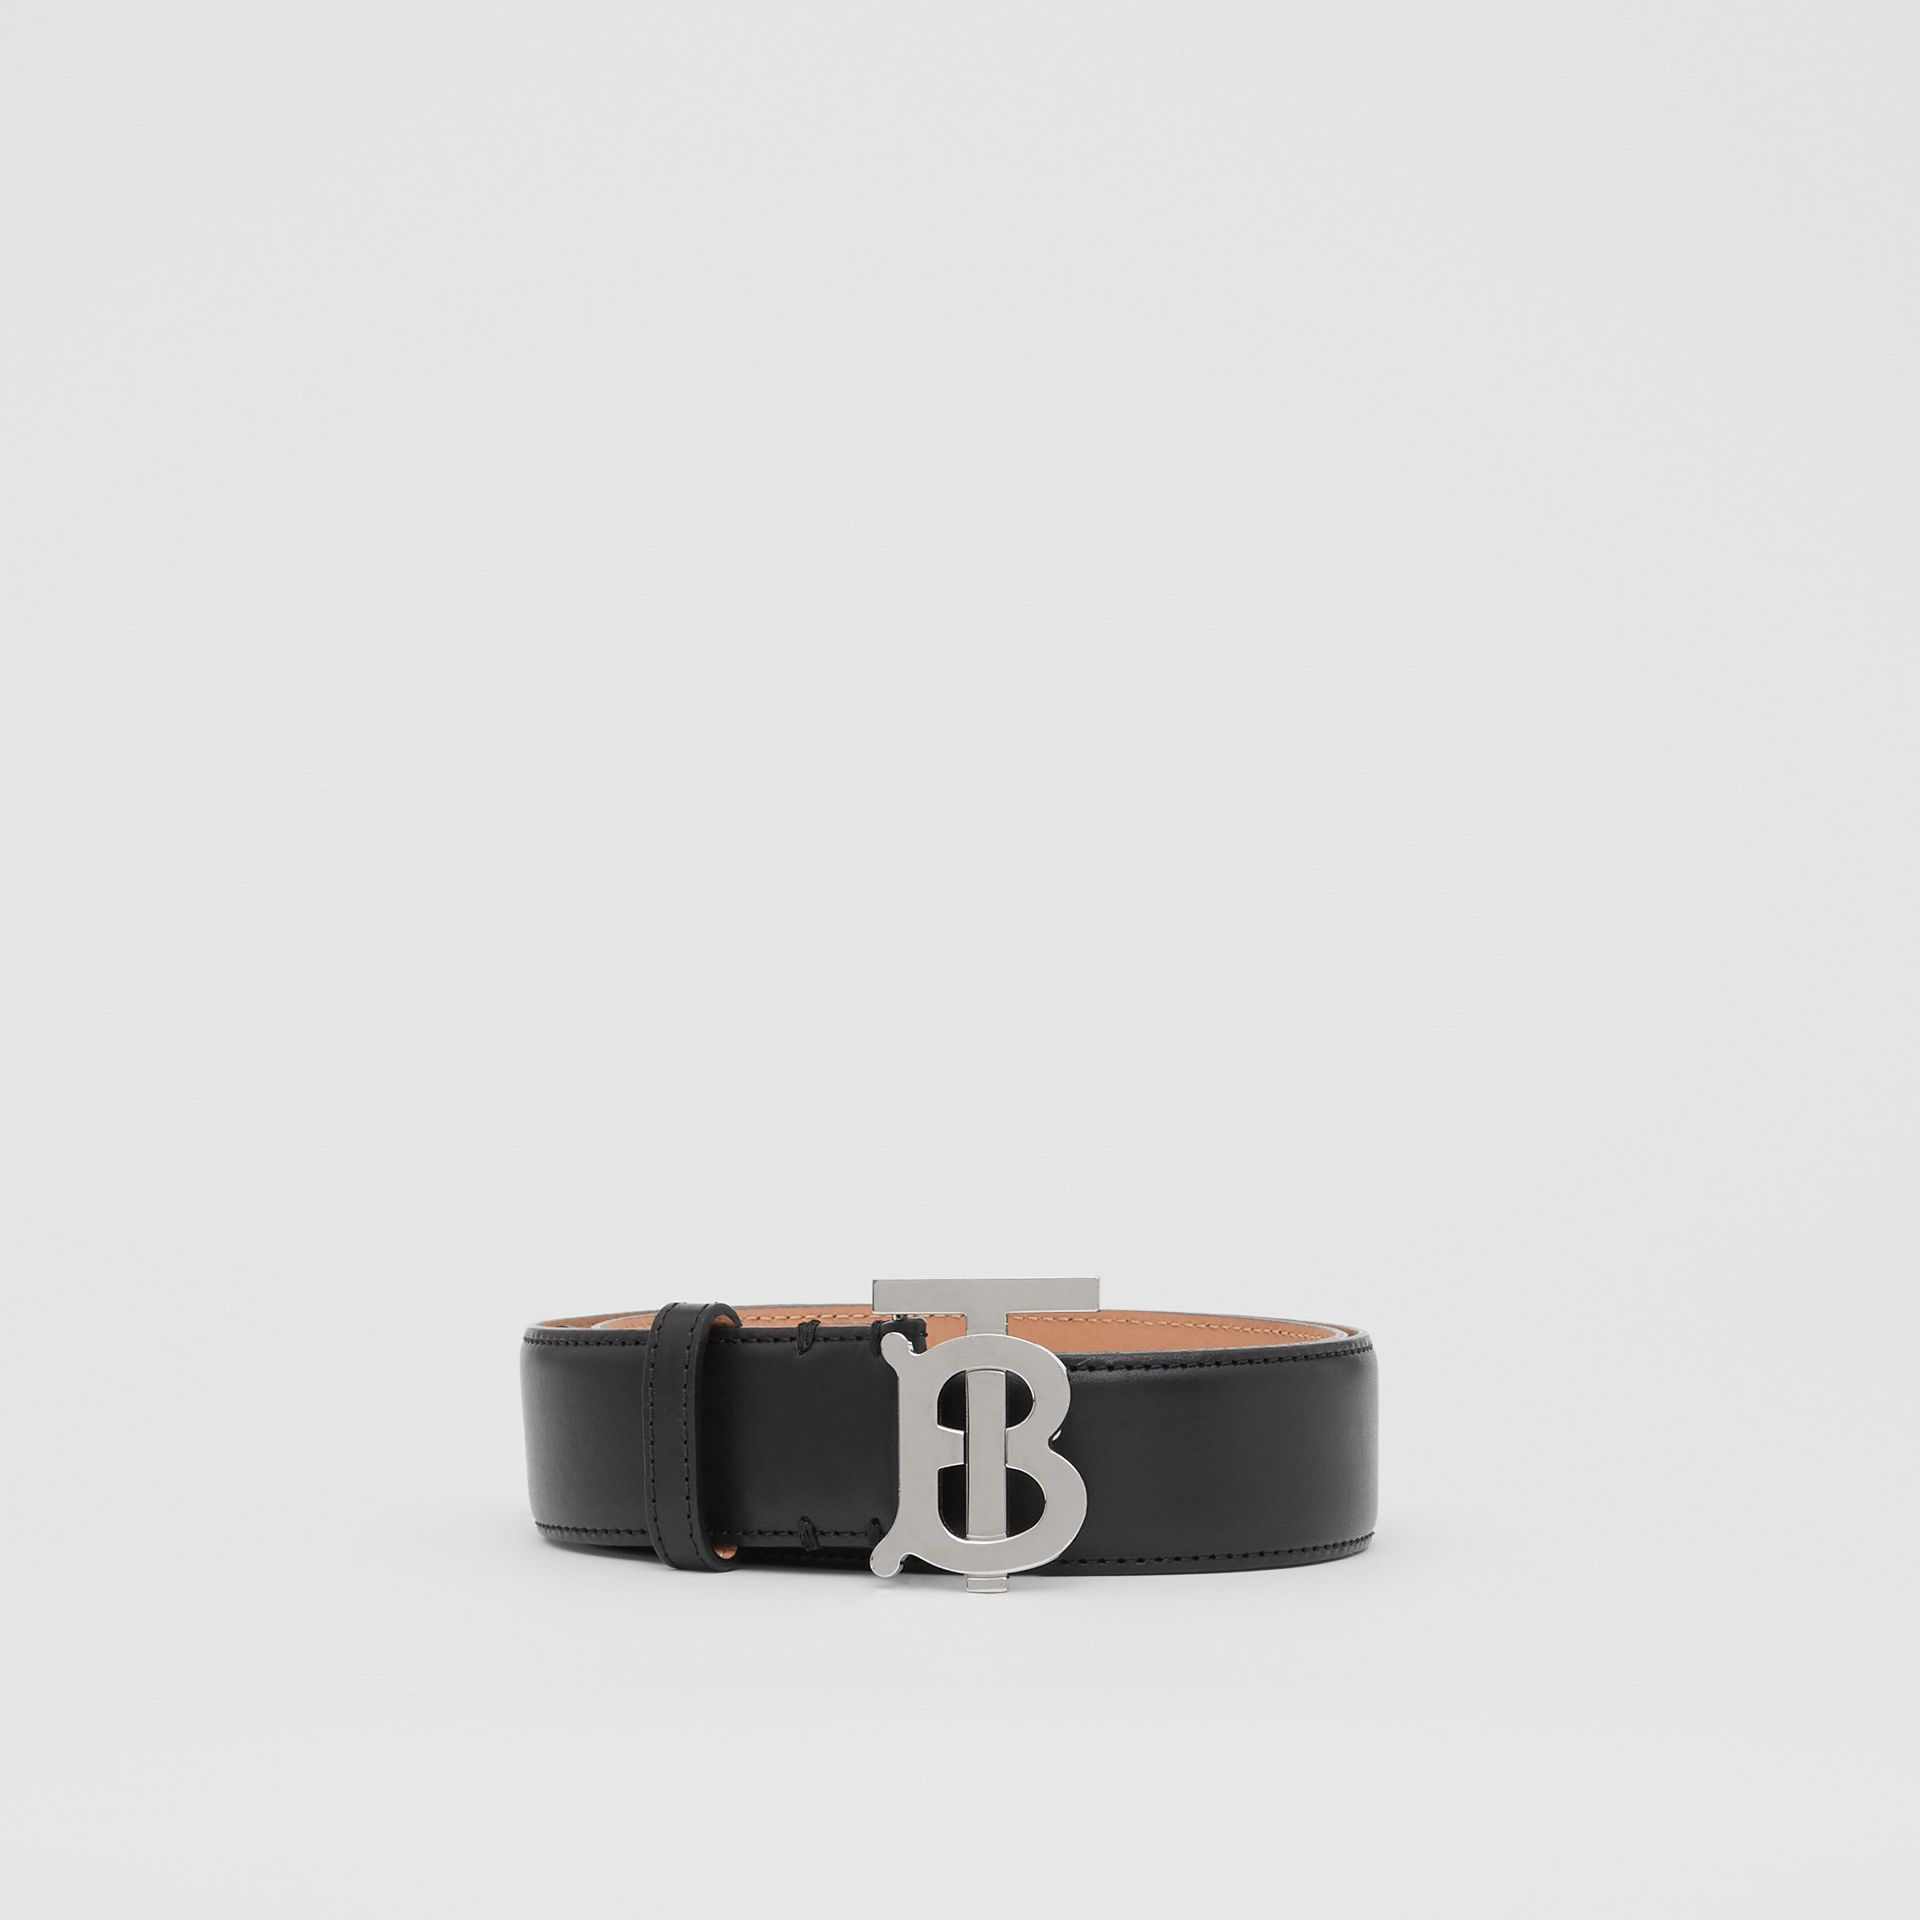 Monogram Motif Leather Belt in Black/palladio - Women | Burberry - gallery image 3